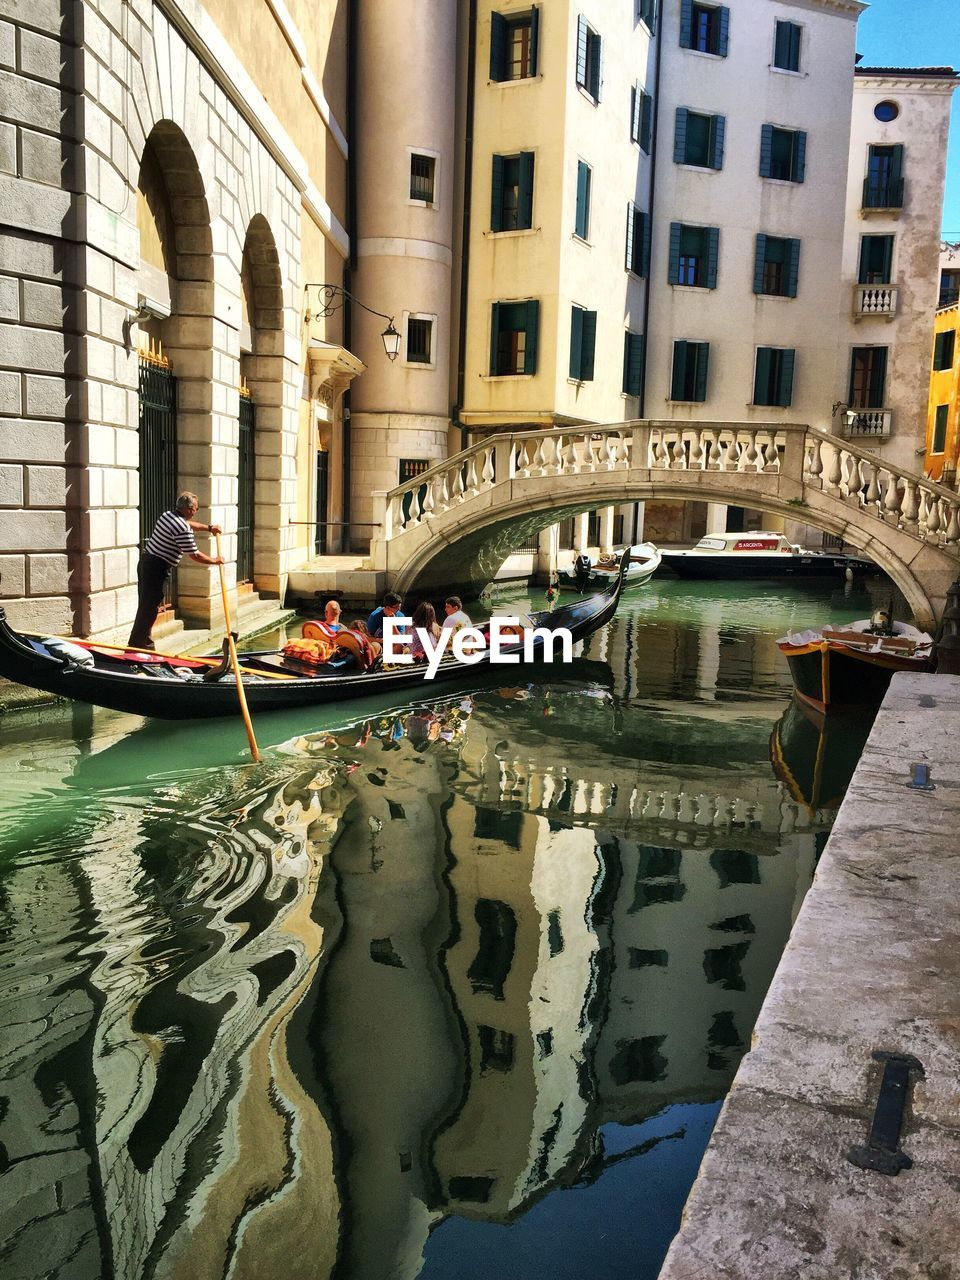 built structure, water, nautical vessel, architecture, transportation, mode of transportation, canal, building exterior, bridge, connection, bridge - man made structure, gondola - traditional boat, incidental people, day, arch, waterfront, nature, travel destinations, city, outdoors, arch bridge